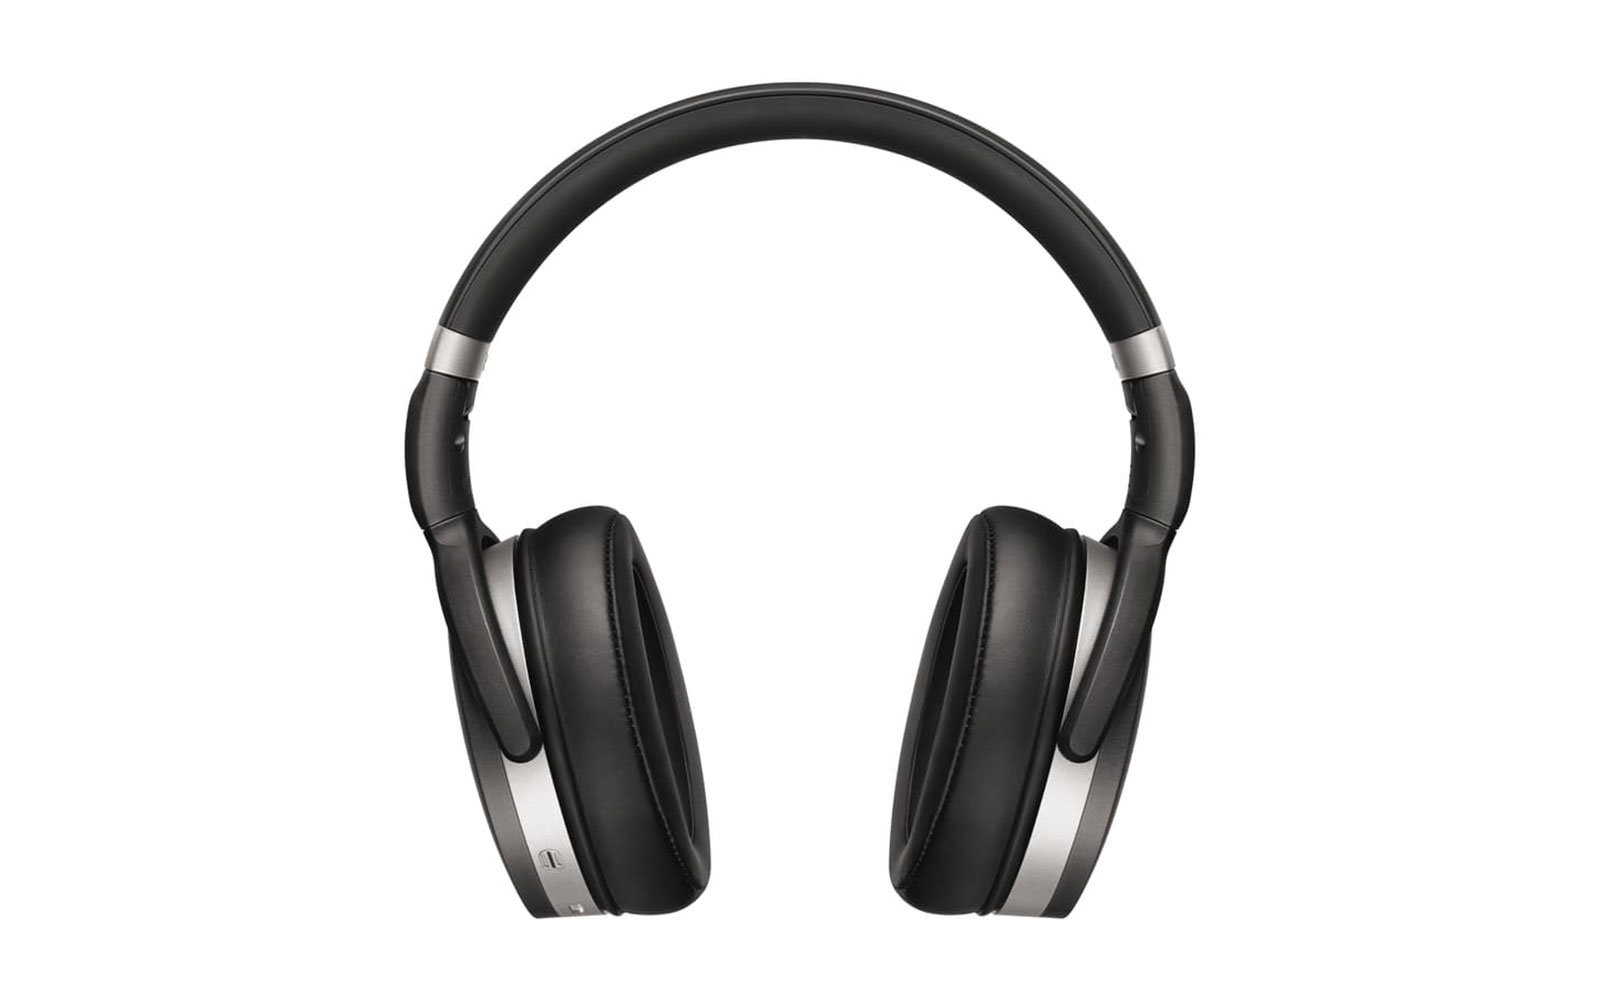 HD 4.50 Bluetooth Noise Cancelling Over-Ear Headphones